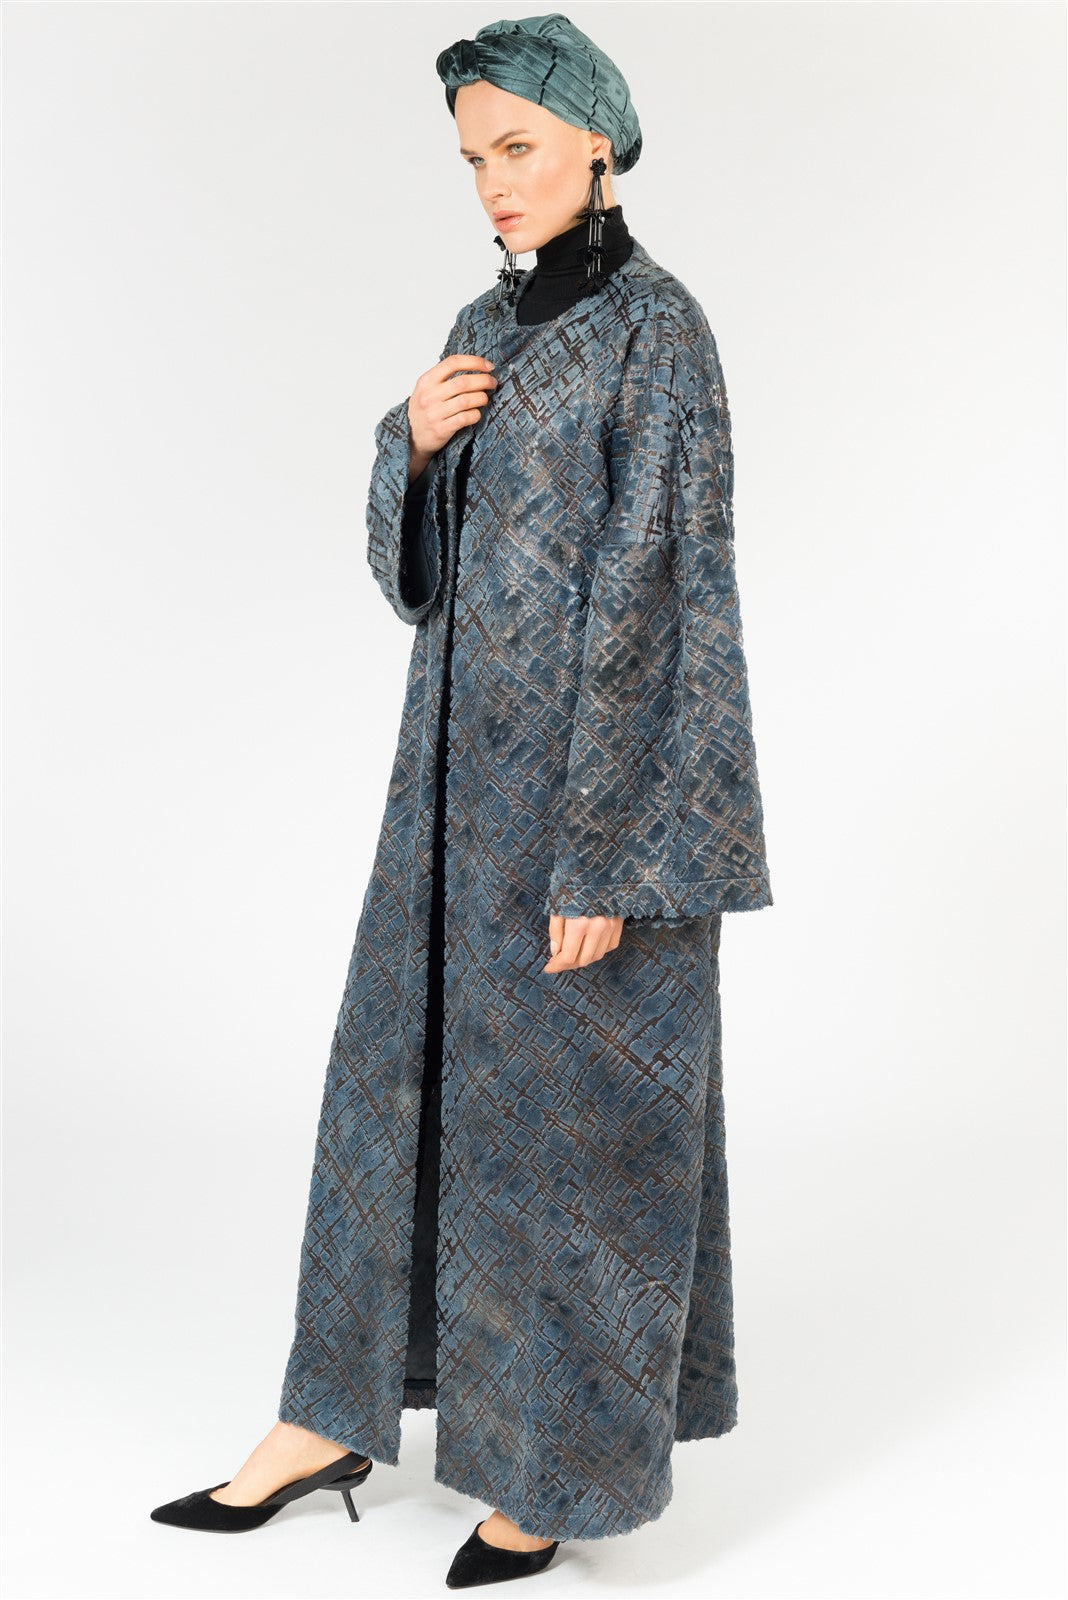 CRUSHED EFFECT VELVET ABAYA